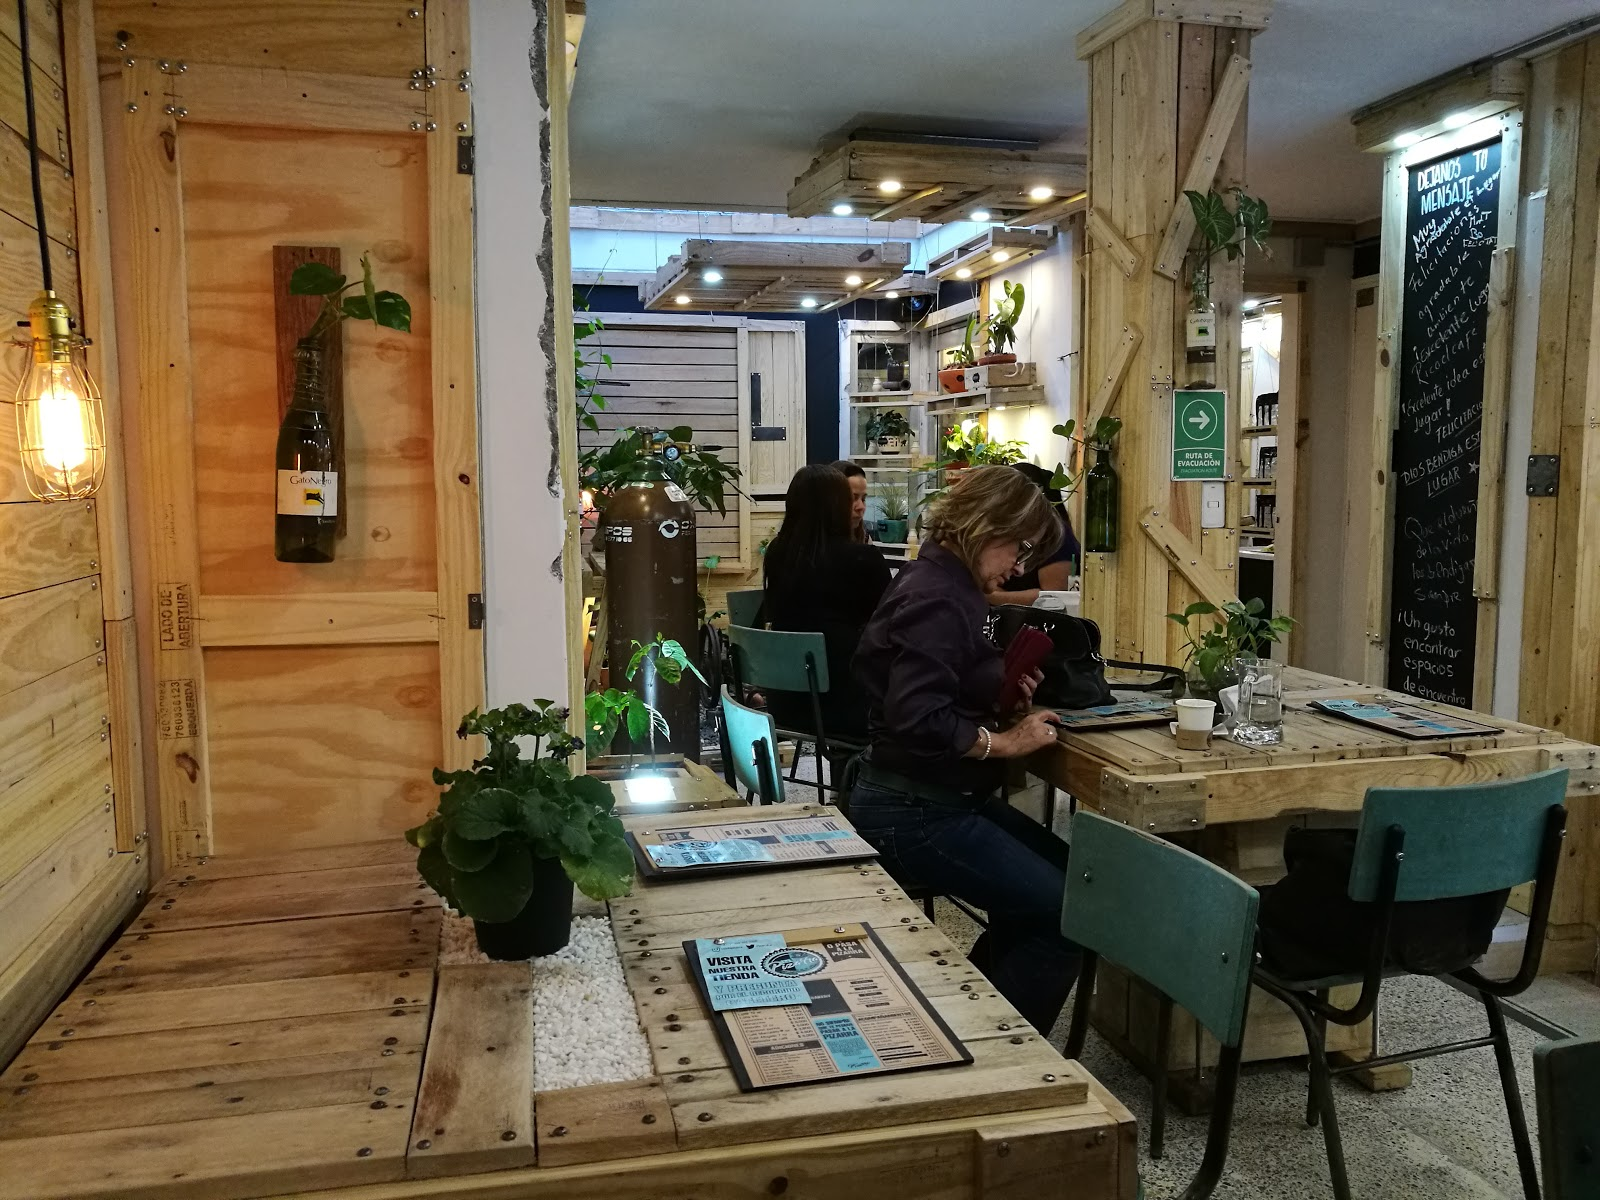 La Pizarra Café: A Work-Friendly Place in Medellin